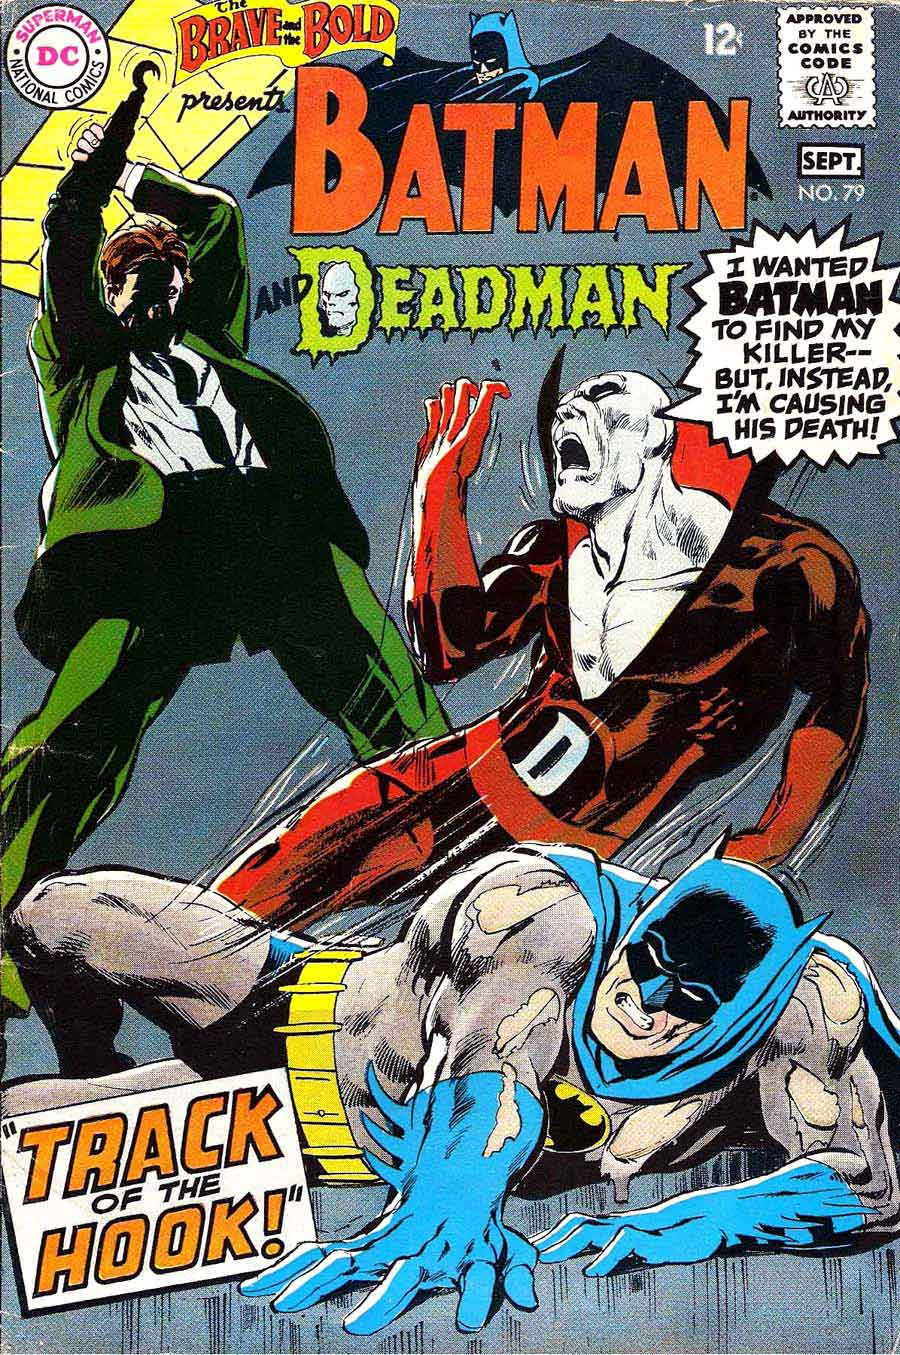 brave and the bold  79 - neal adams art  u0026 cover